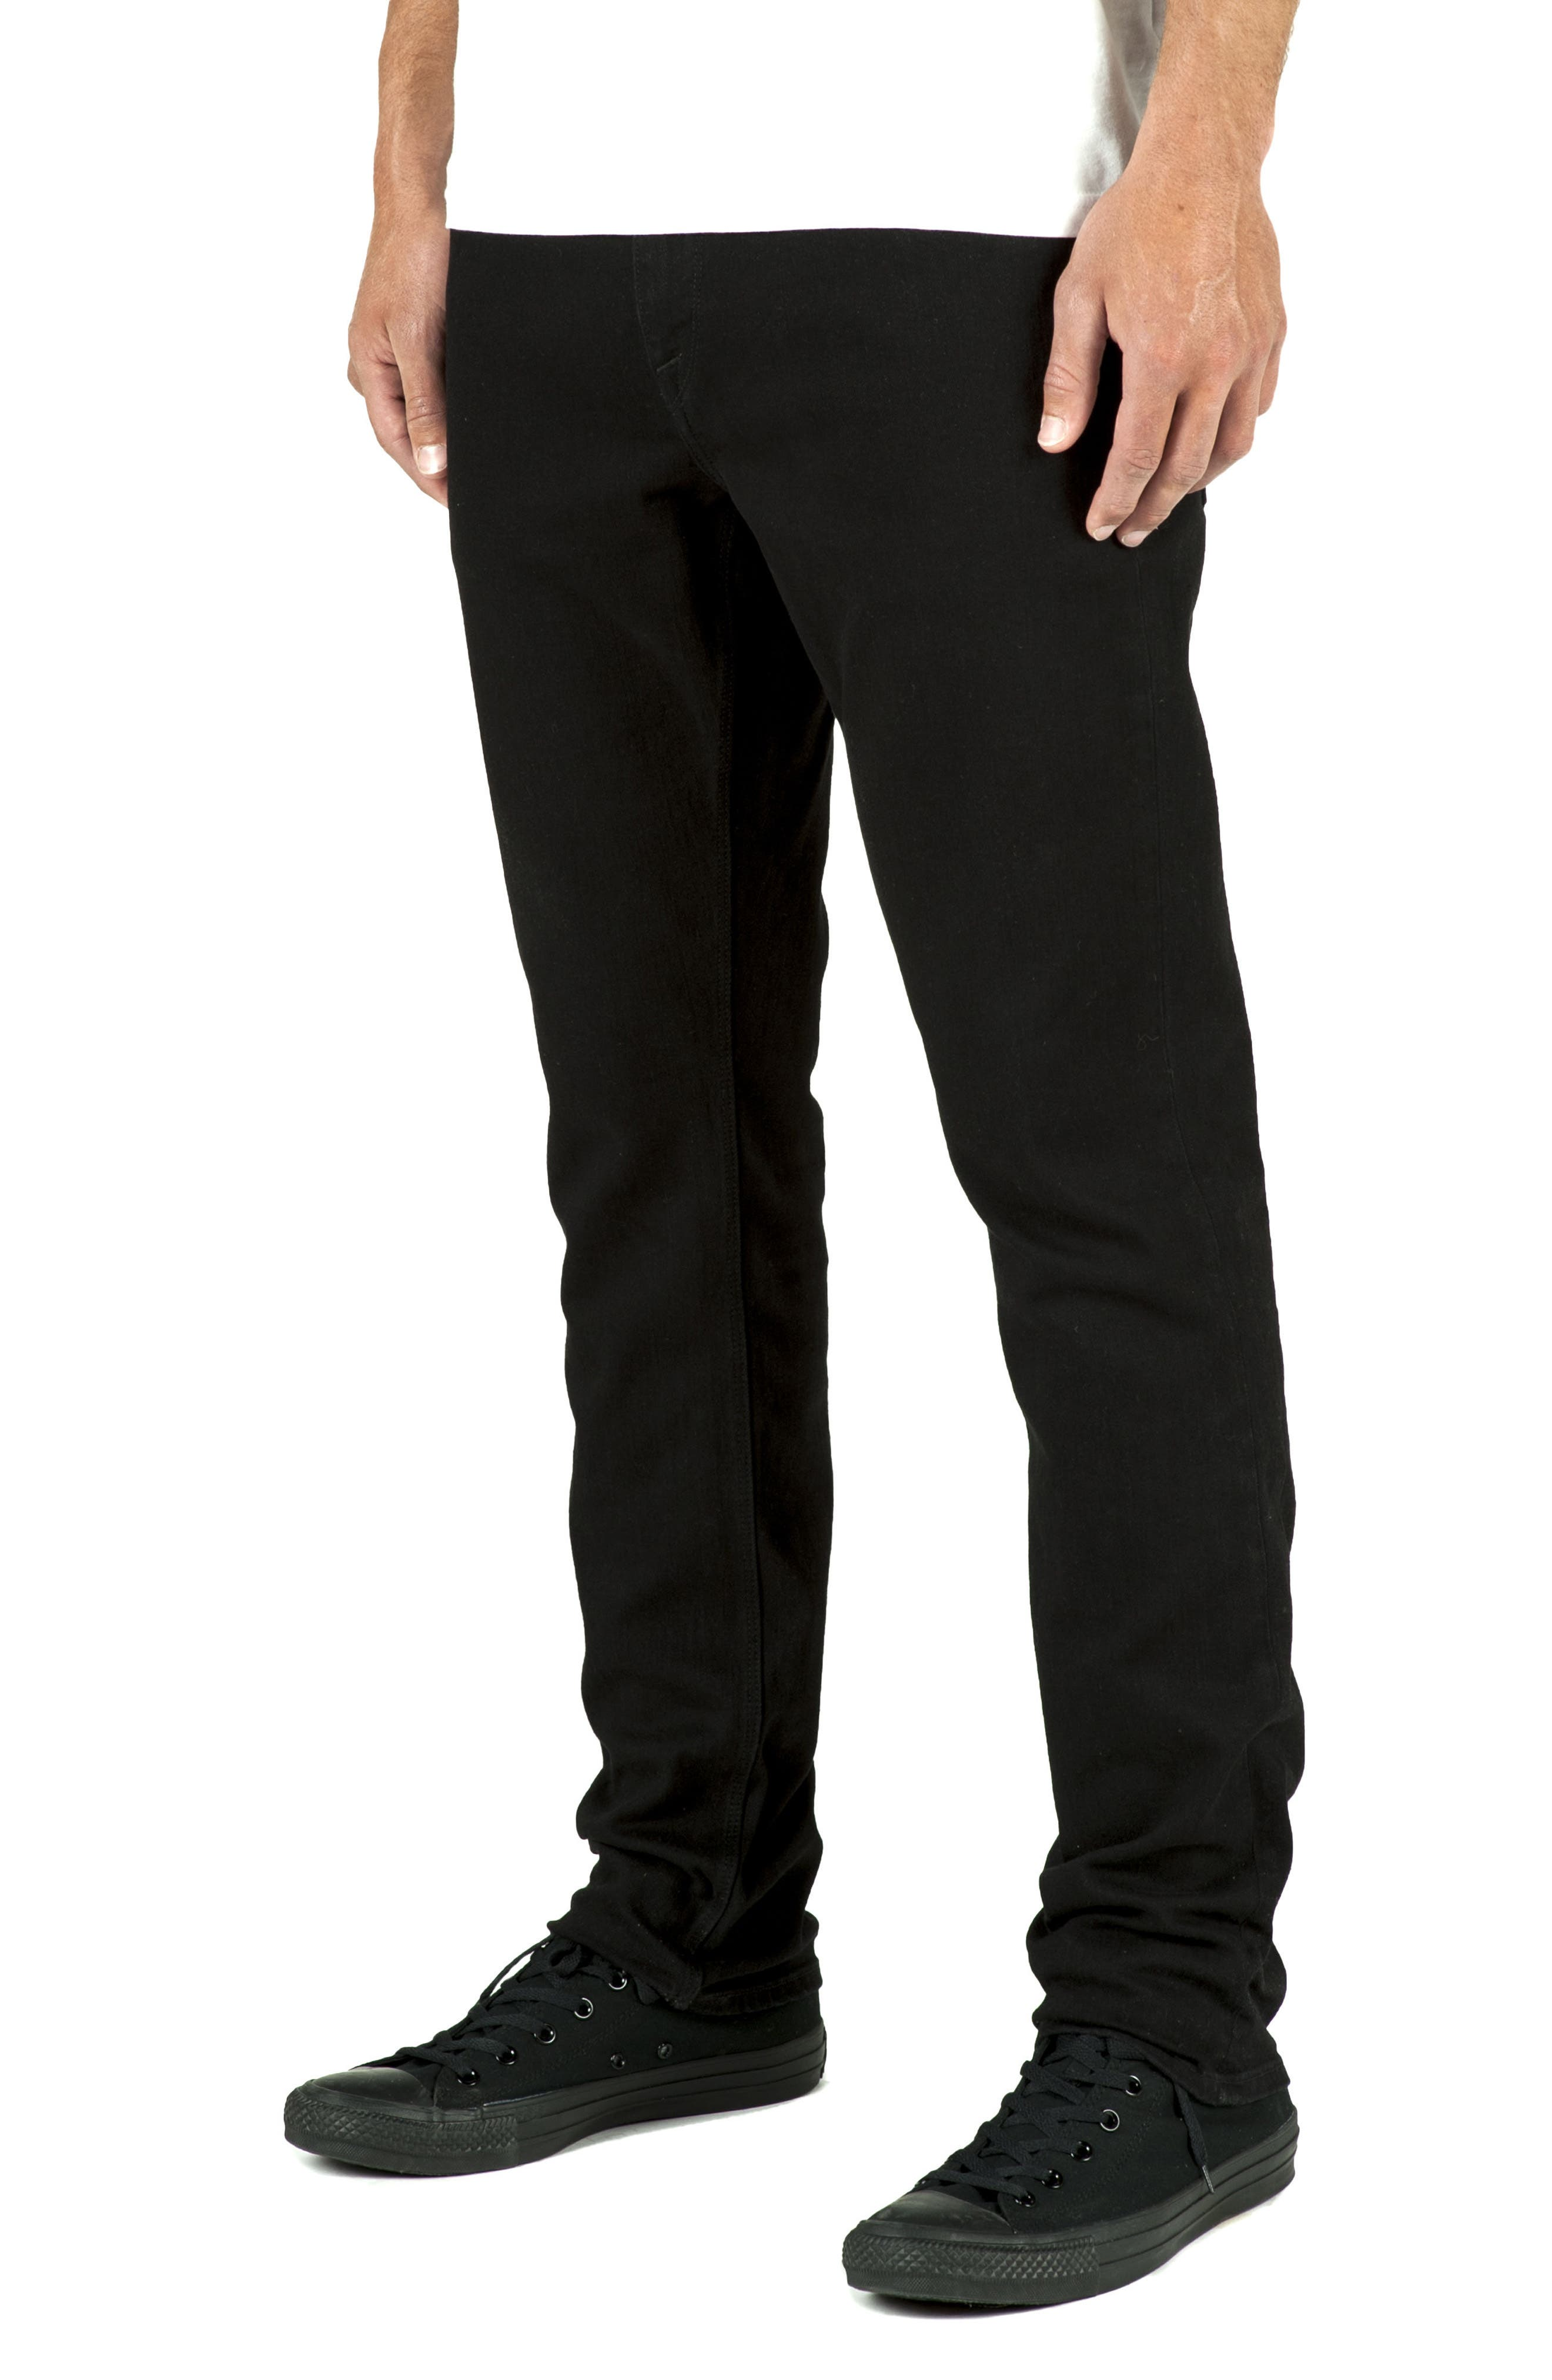 'Solver' Tapered Jeans,                             Alternate thumbnail 3, color,                             017